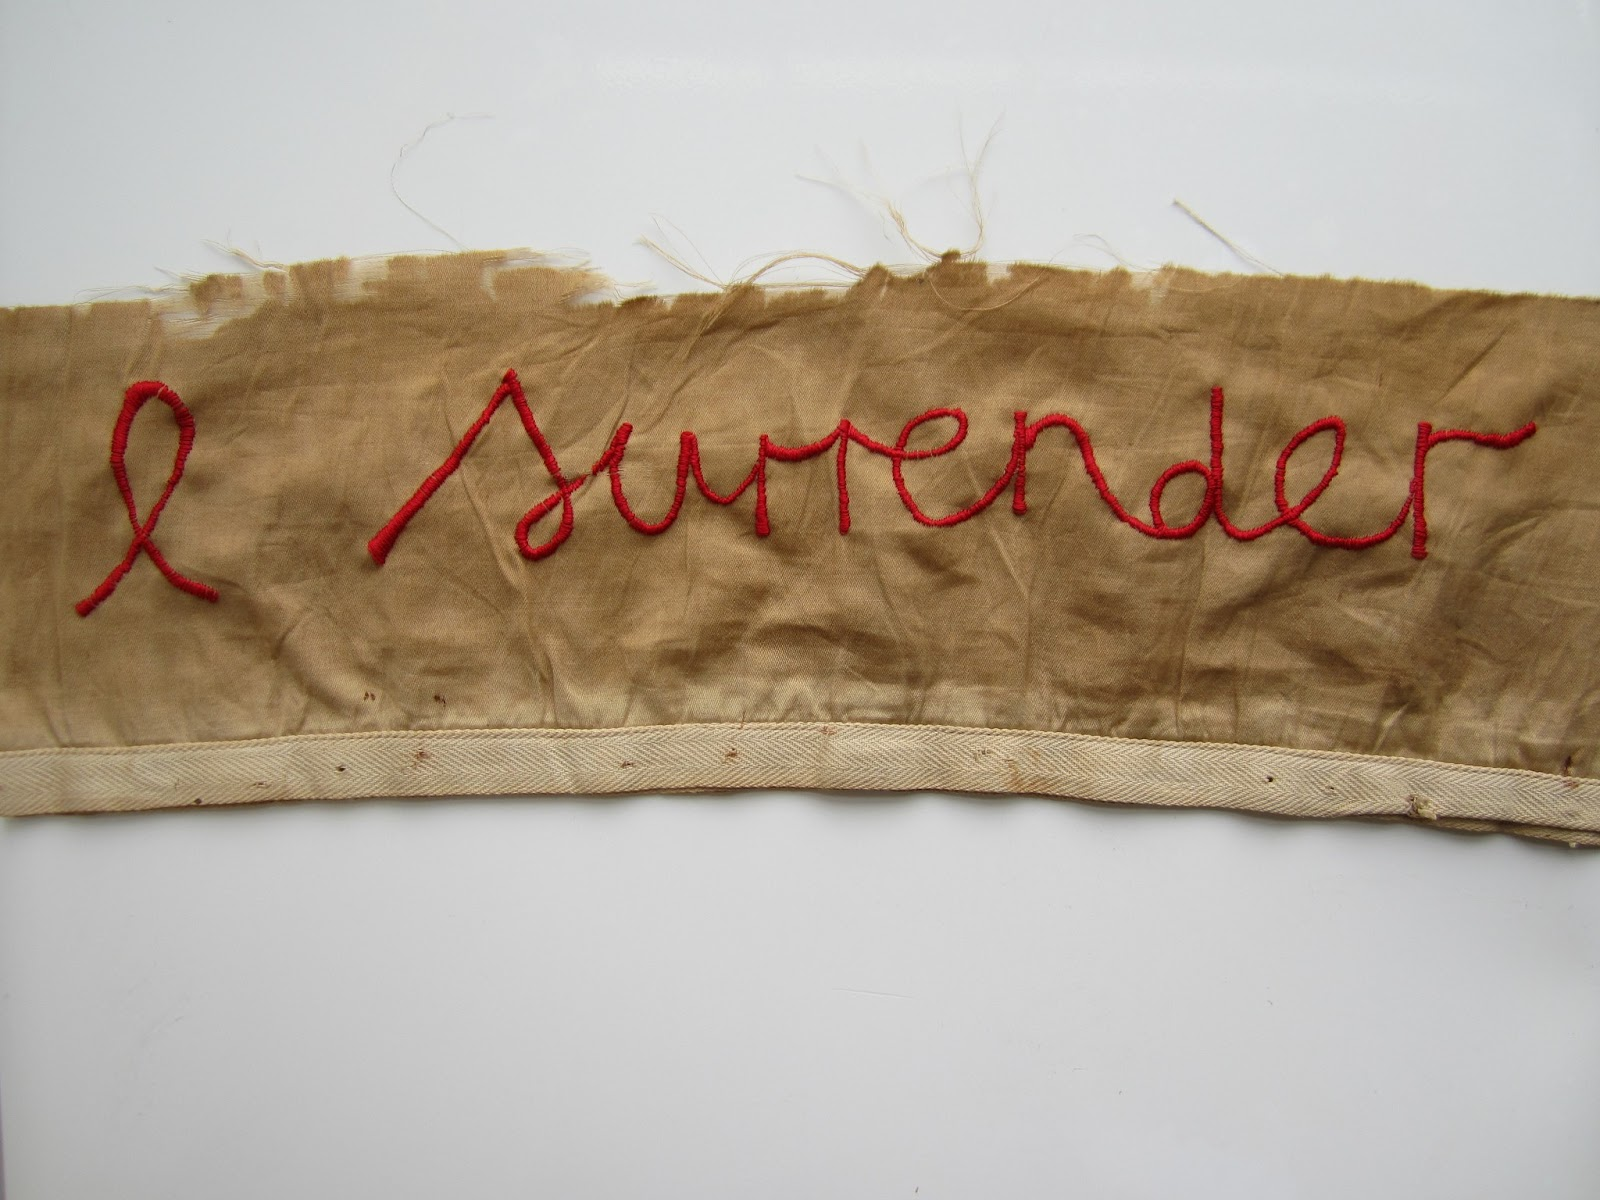 Stitch Therapy - I Surrender - hand embroidery